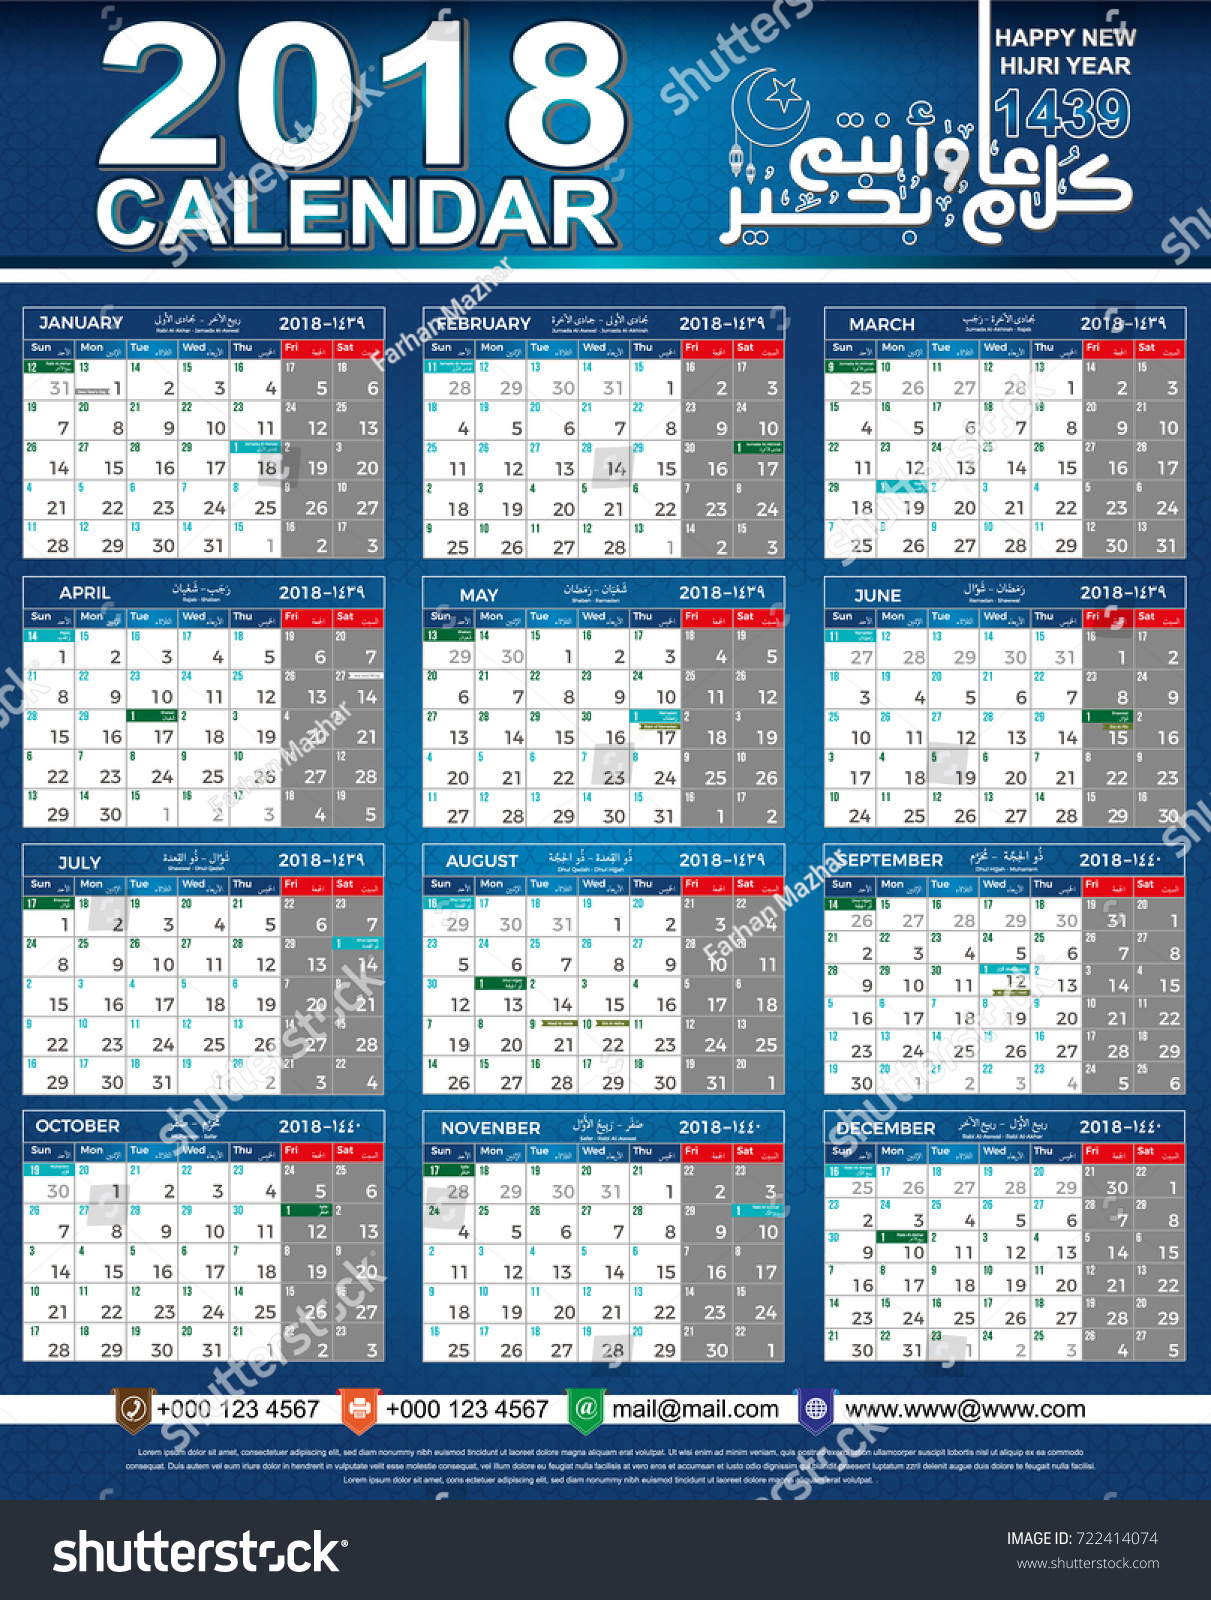 calendar 2018 hijri 1439 islamic arabic english dates horizontal design with bottom